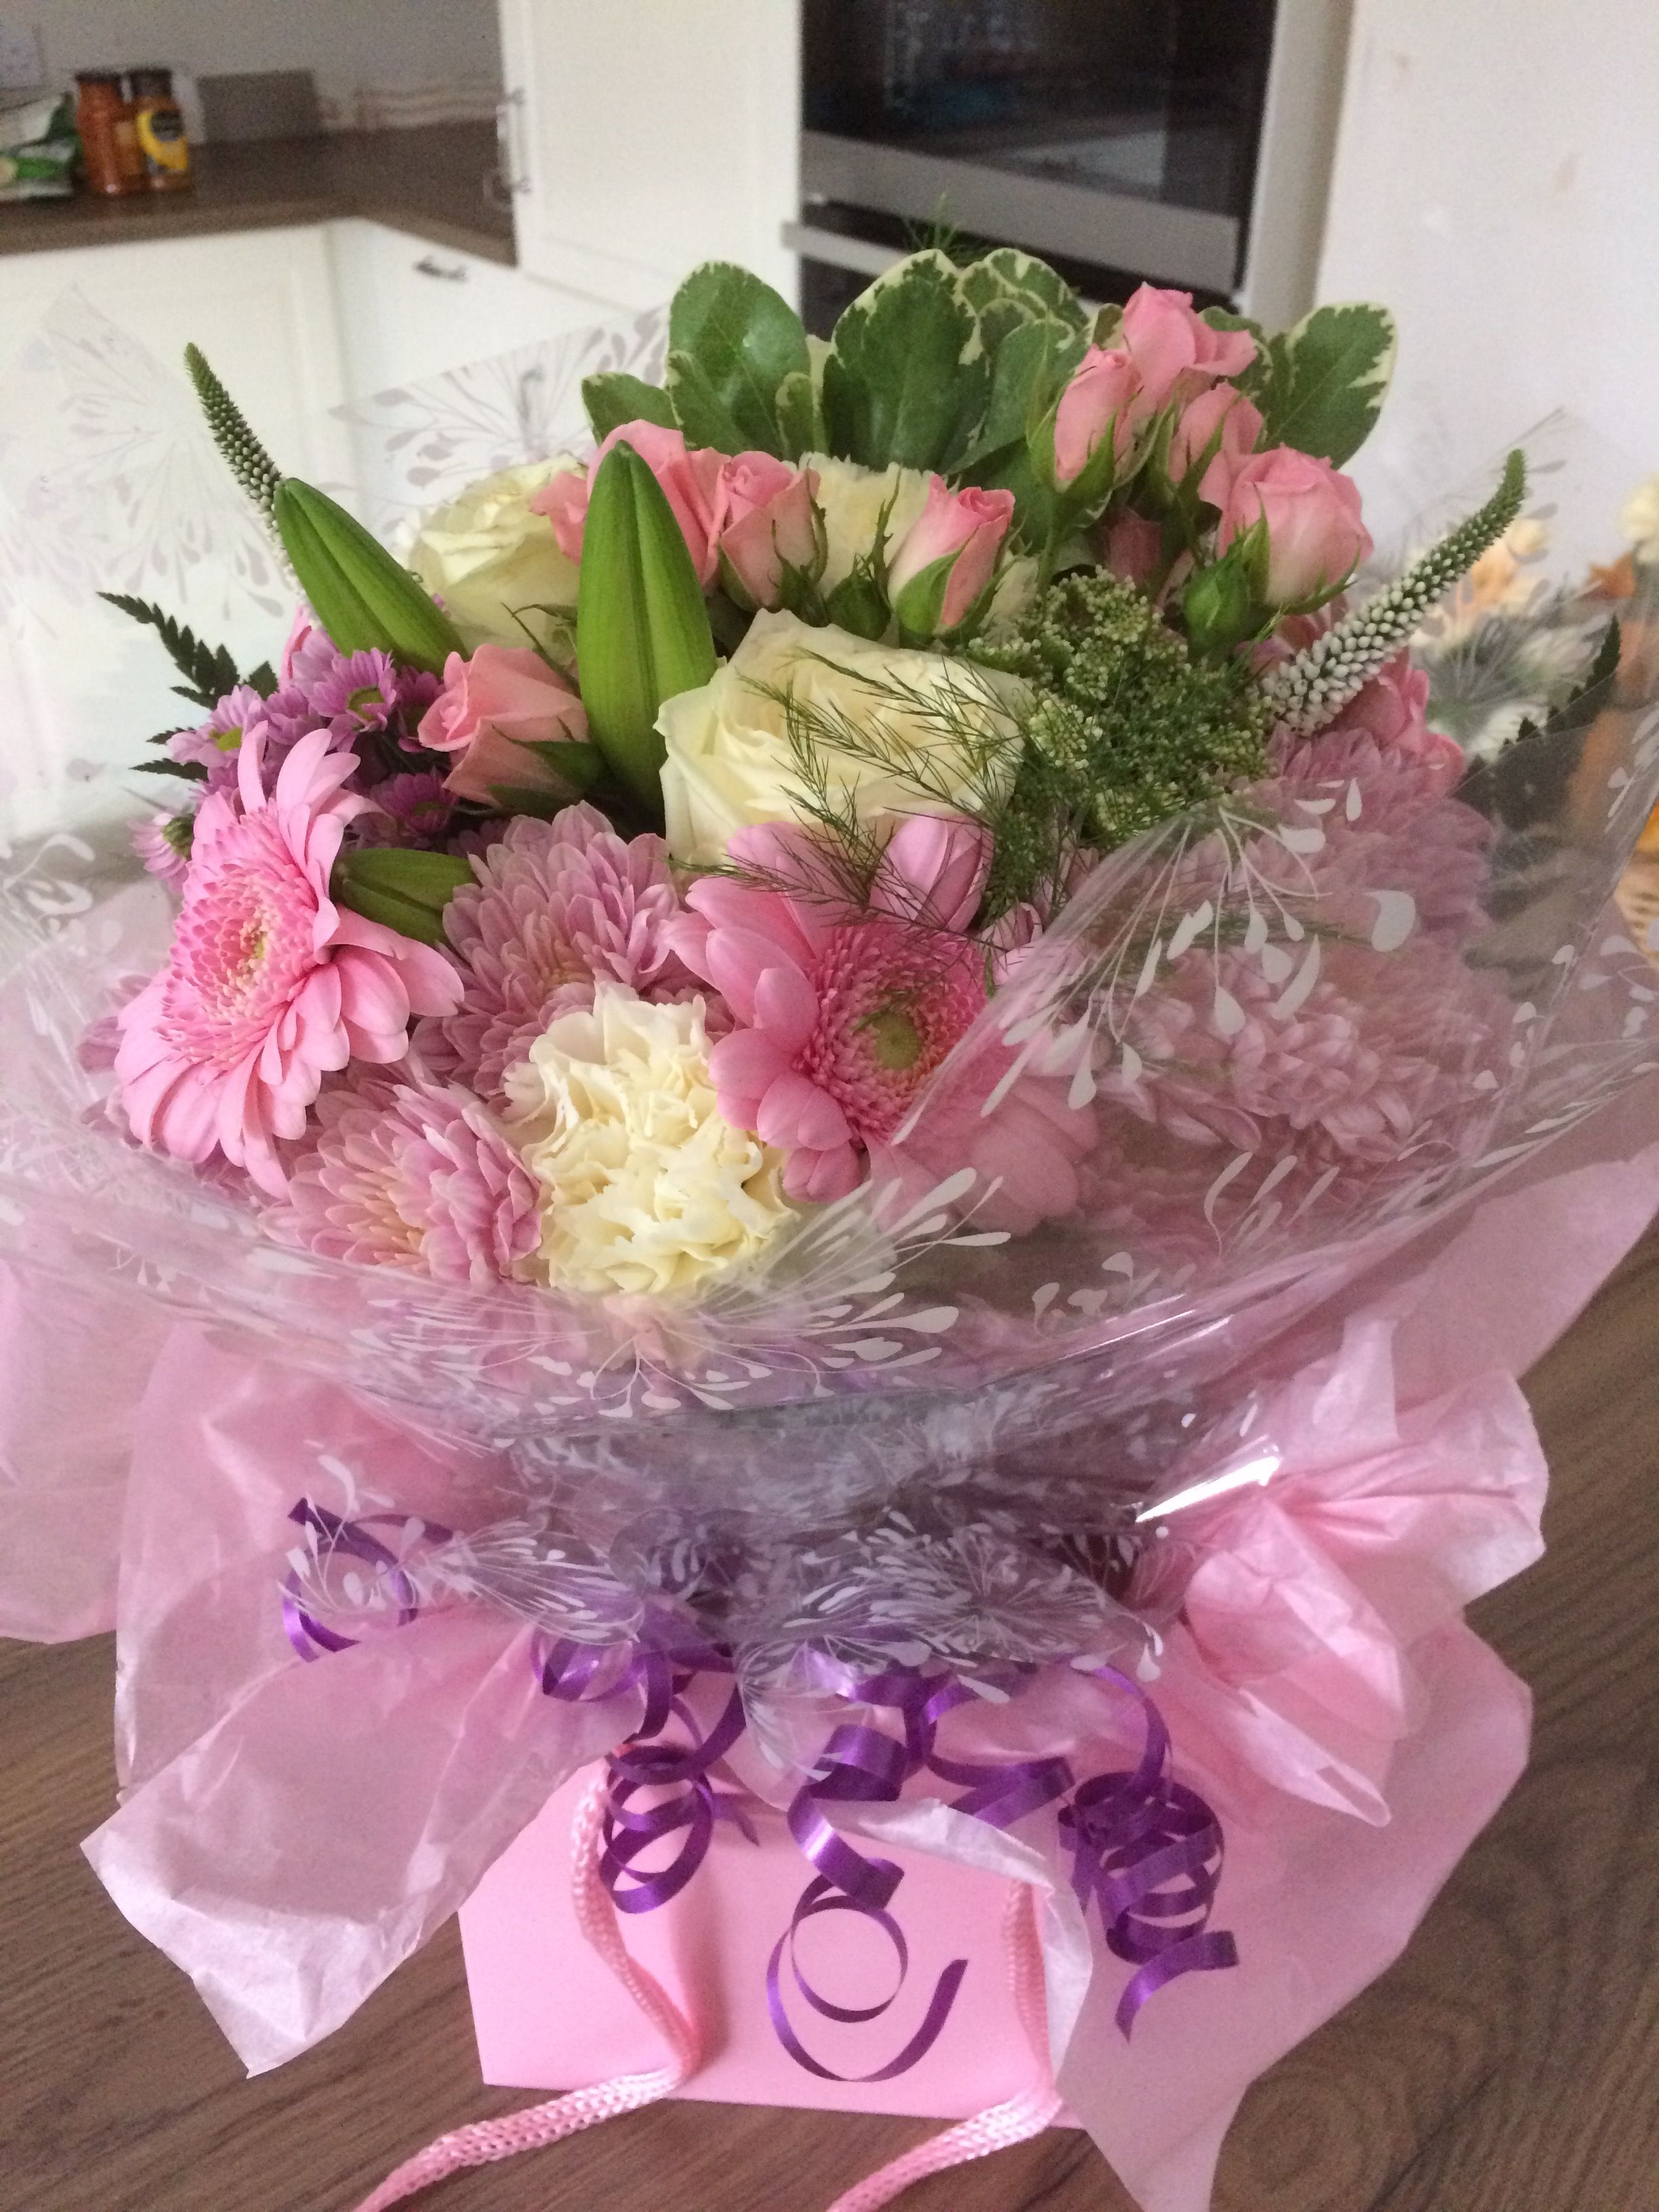 Pretty pink hand tied bouquet of fresh cut flowers from willow house willow house flowers aylesbury florist free same day delivery in aylesbury bucks local on line florist for next day local delivery flowers bouquets izmirmasajfo